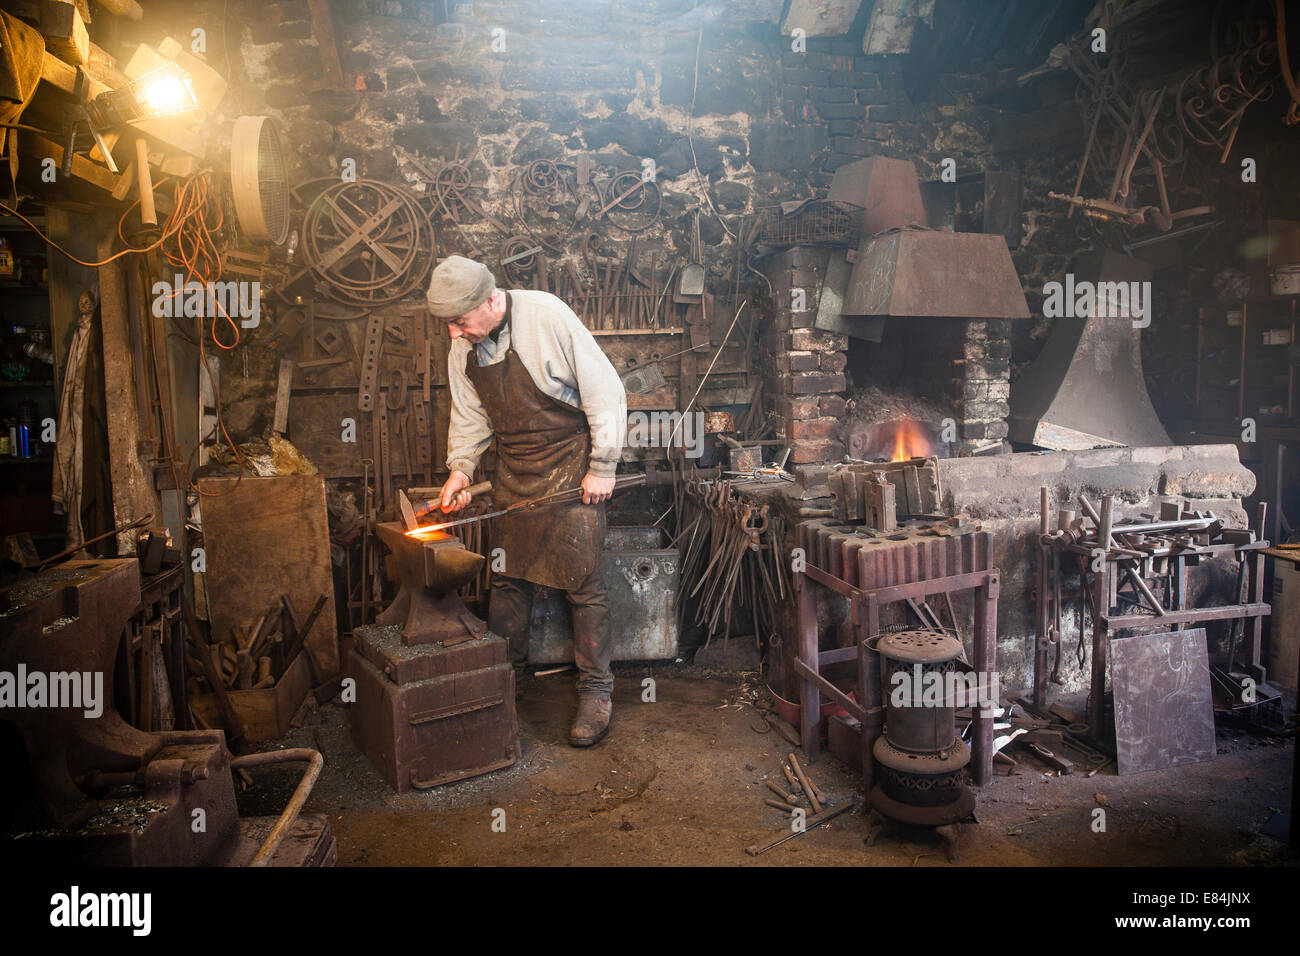 Blacksmith Forge Stock Photos & Blacksmith Forge Stock